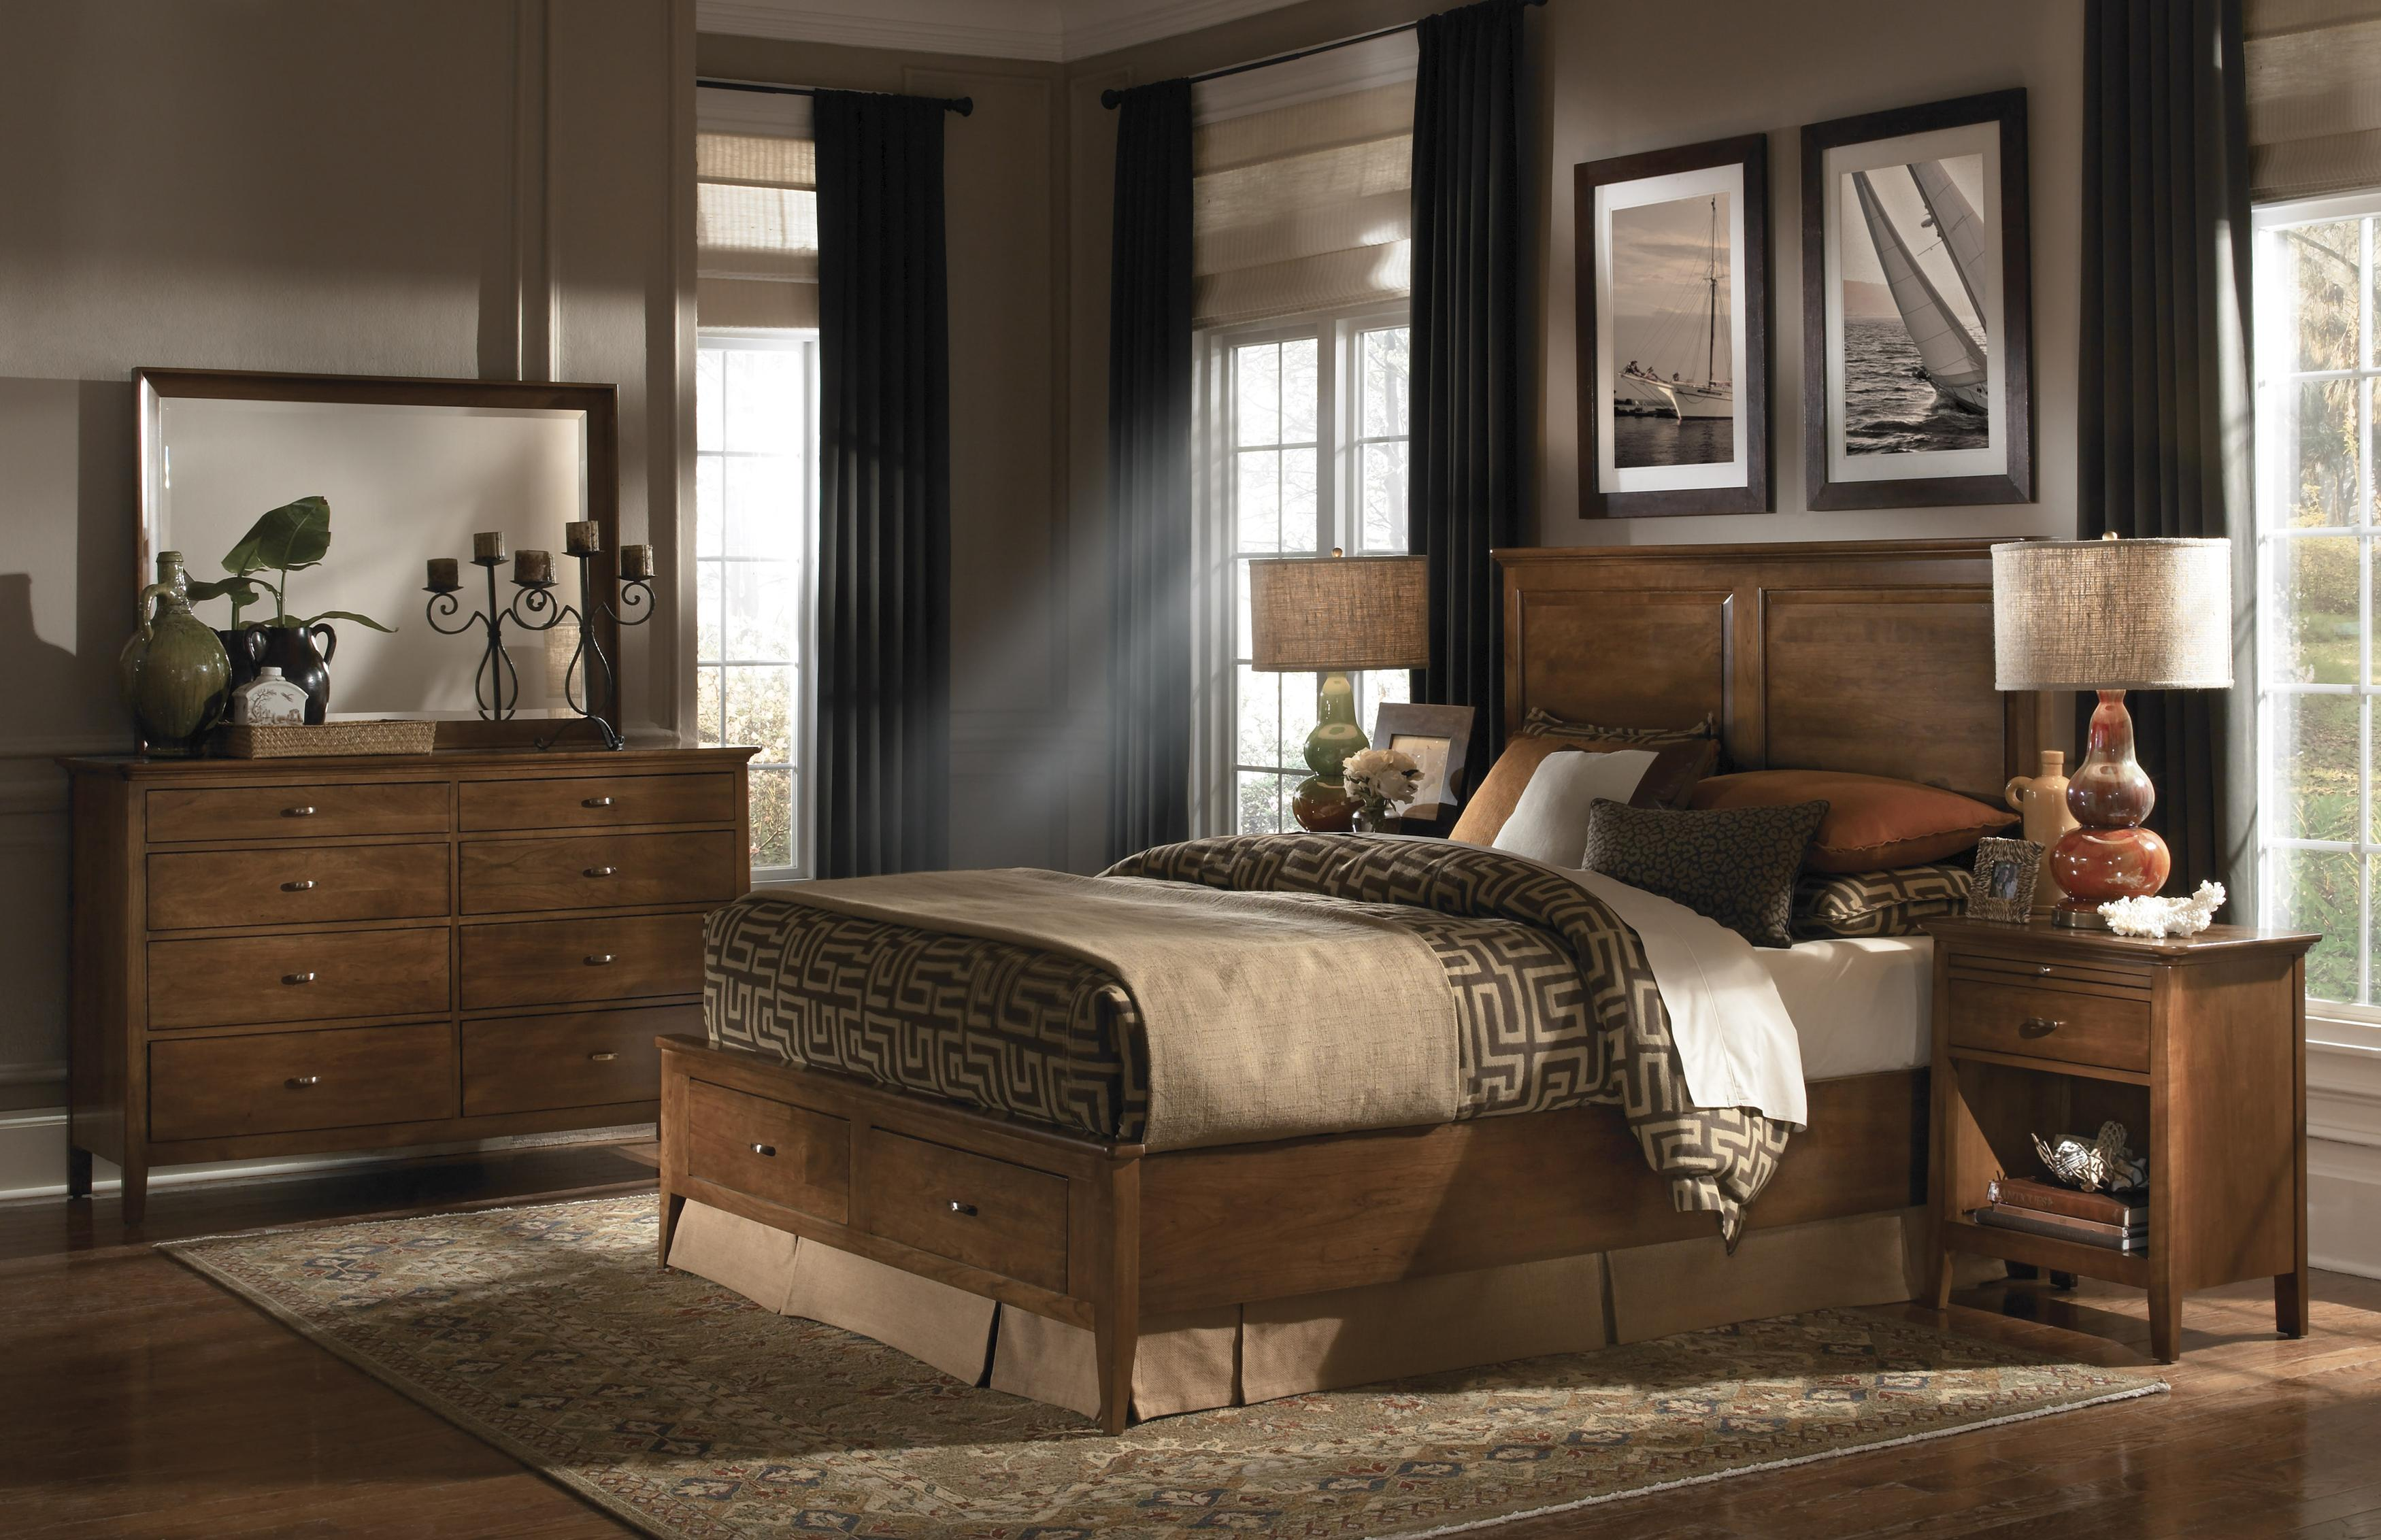 Kincaid furniture cherry park king size bed with panel - Kincaid bedroom furniture for sale ...